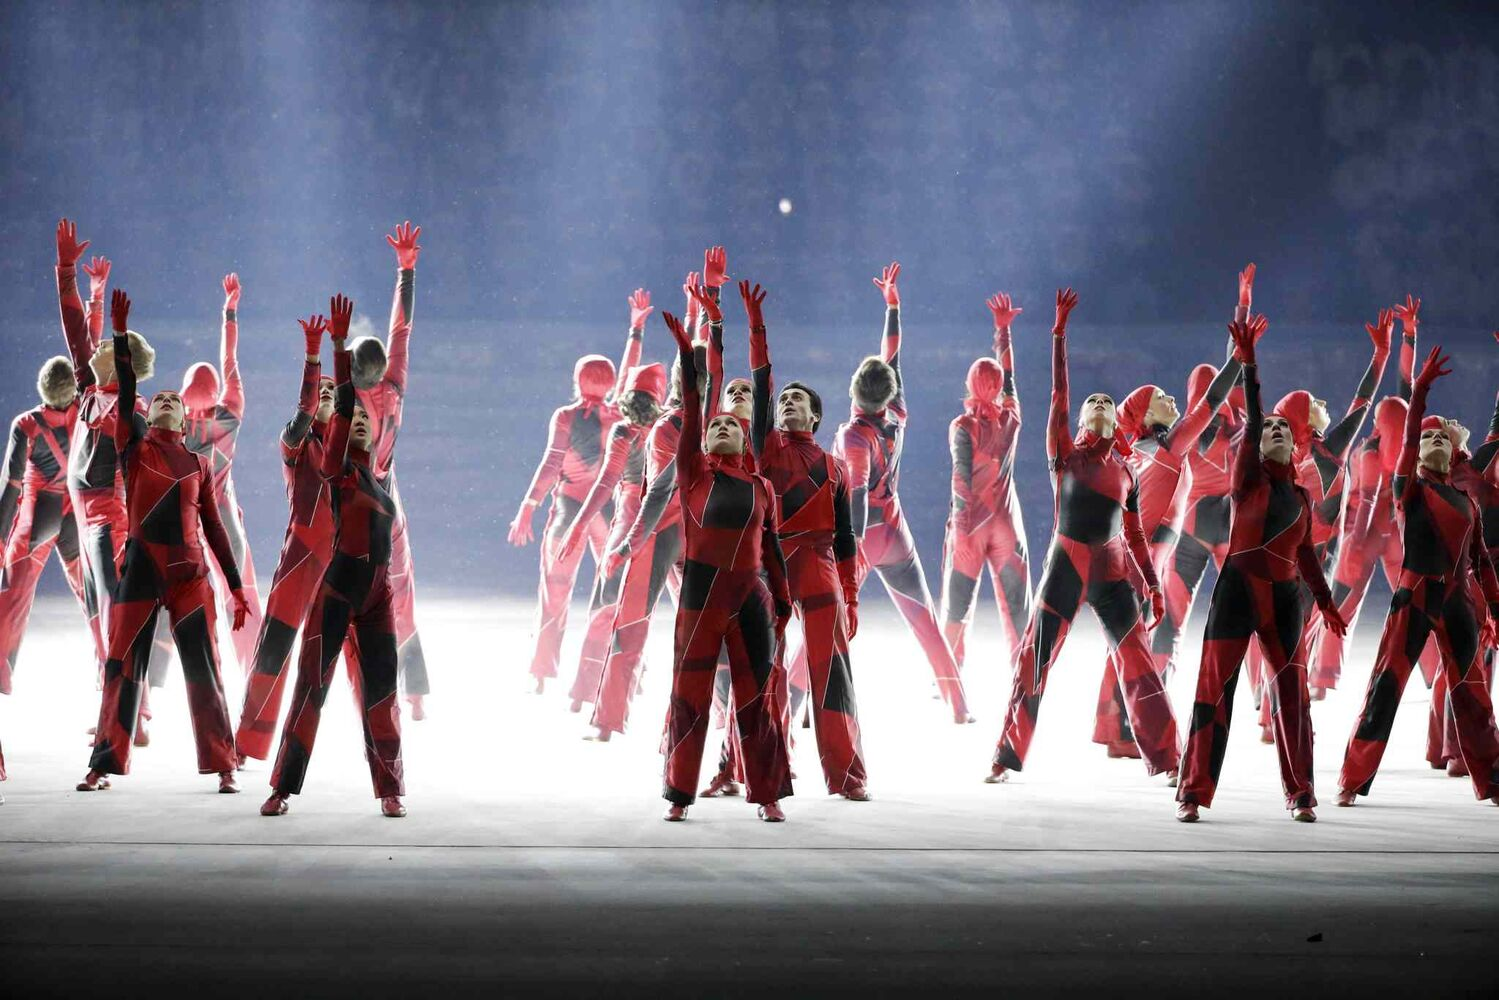 Dancers perform during the opening ceremony of the 2014 Winter Olympics in Sochi, Russia, Friday, Feb. 7, 2014. (AP Photo/Mark Humphrey)